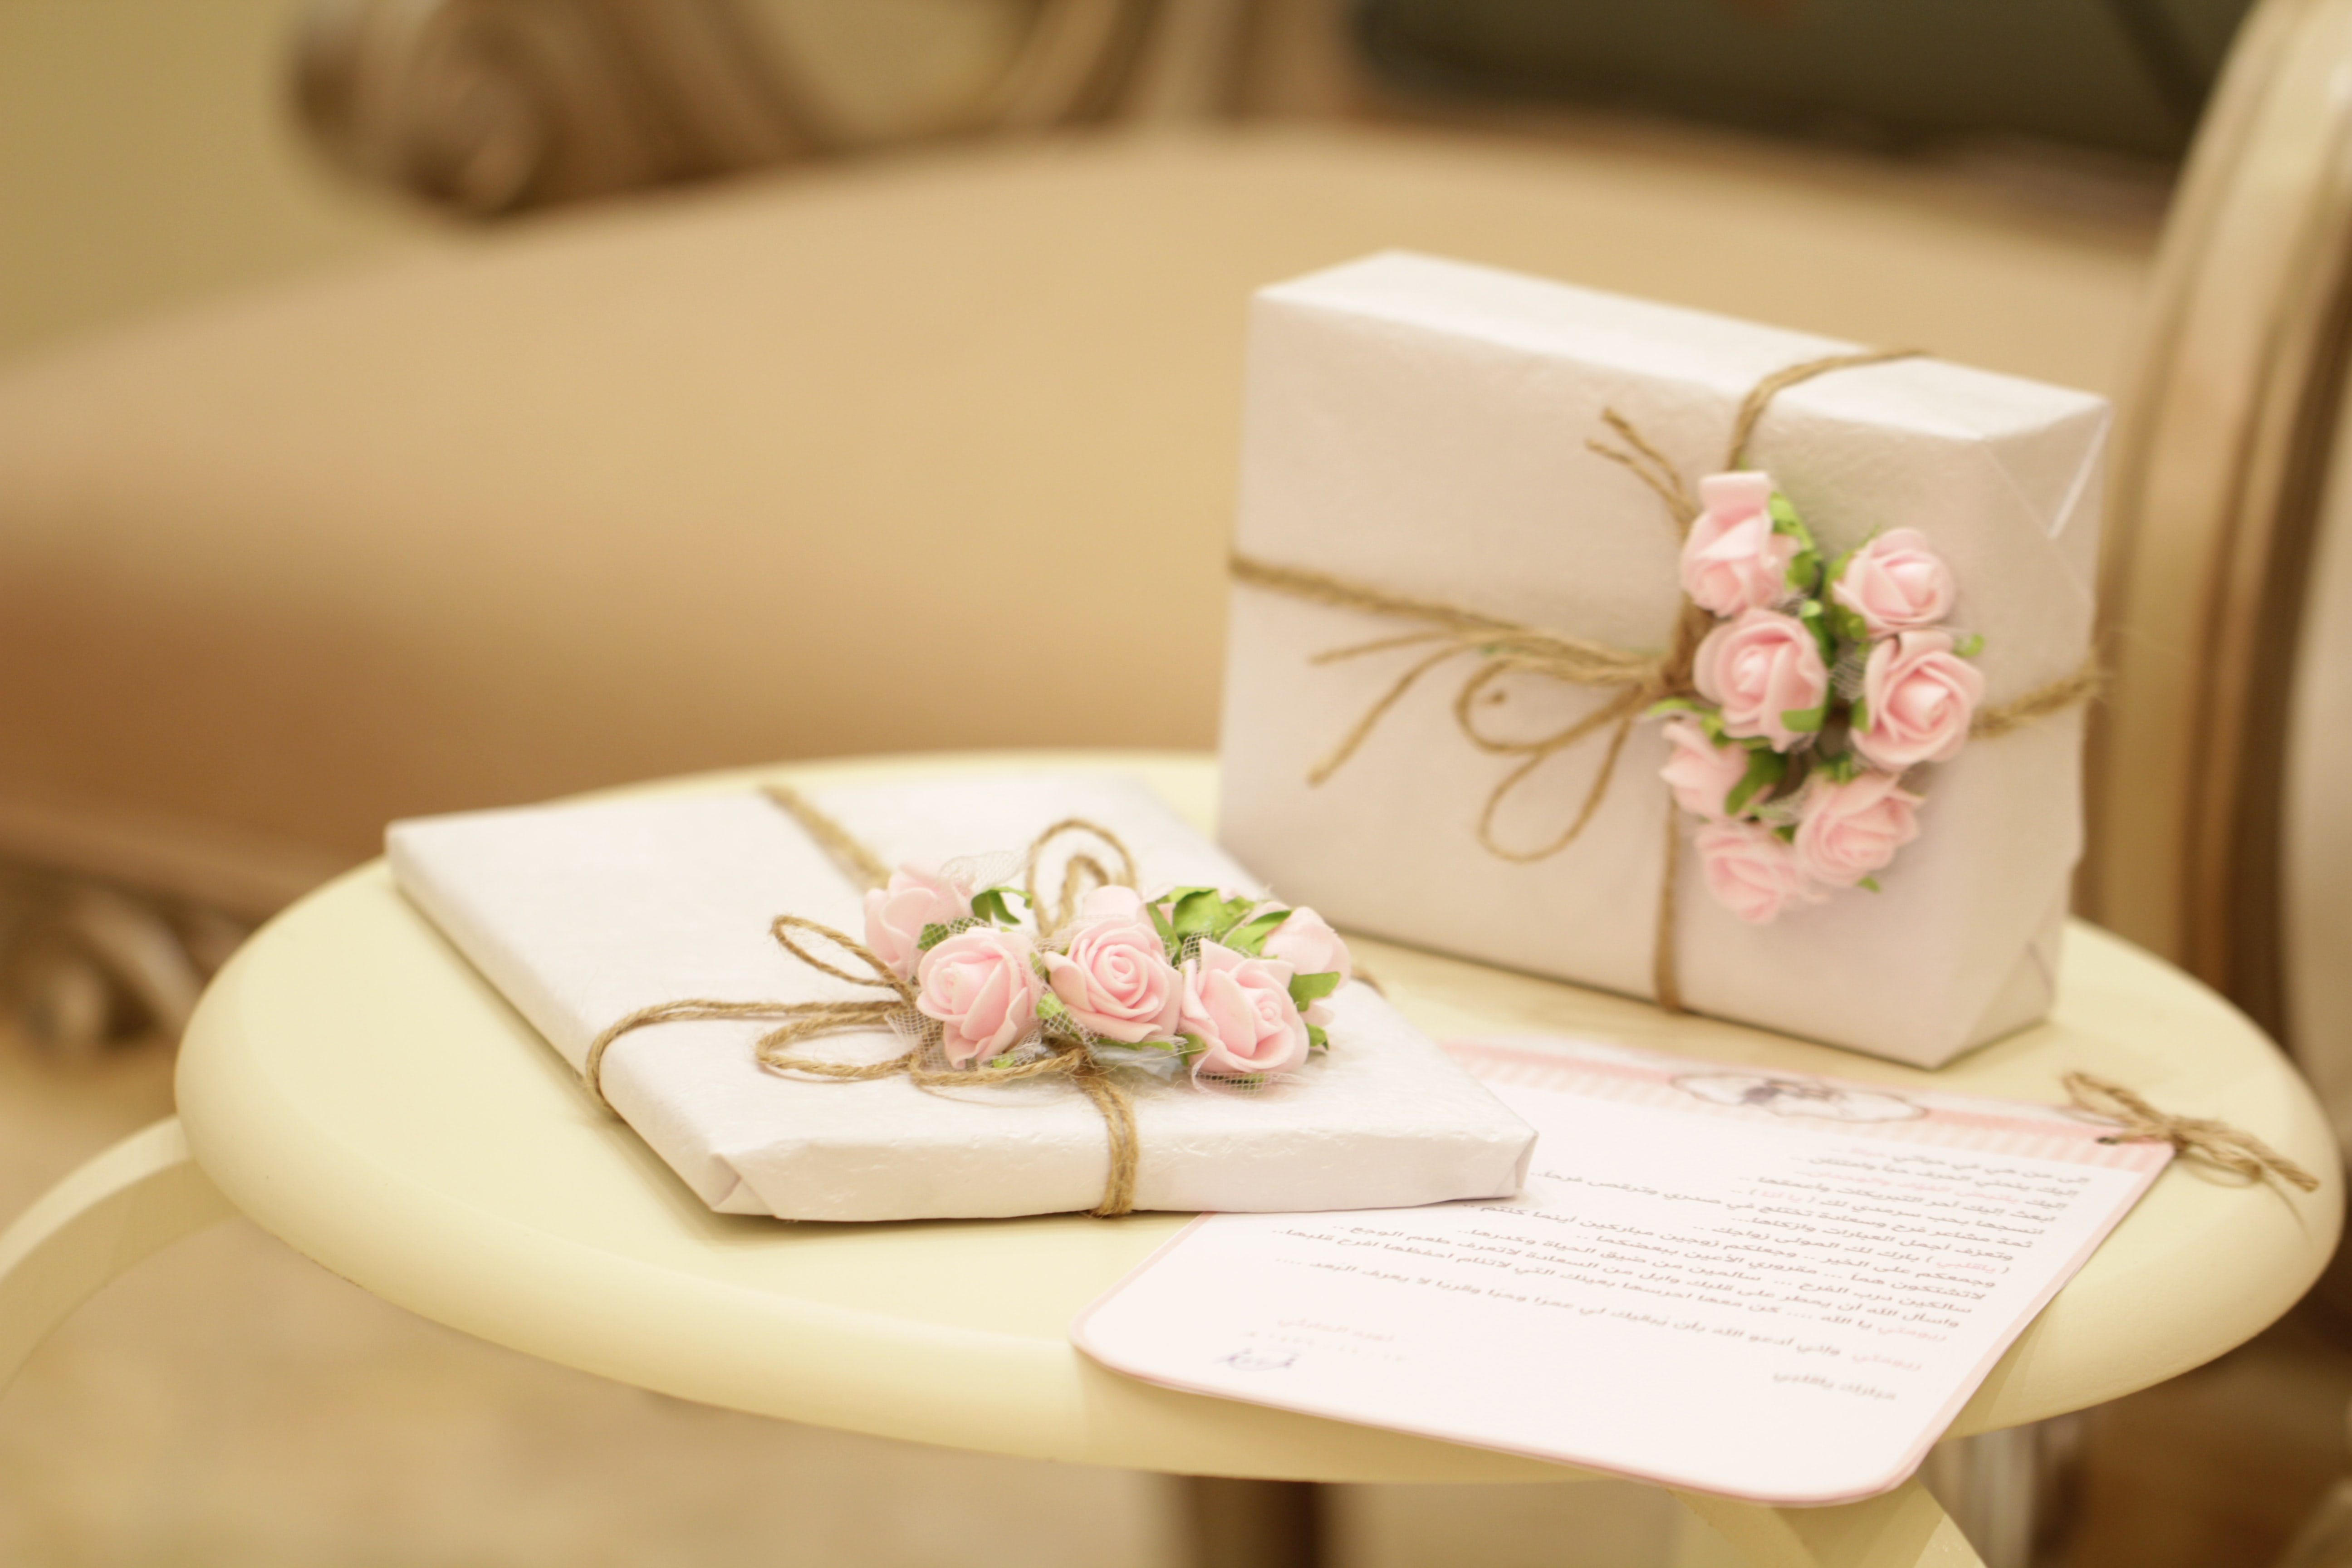 My Present Presence was Given as a Present perfect-gift stories